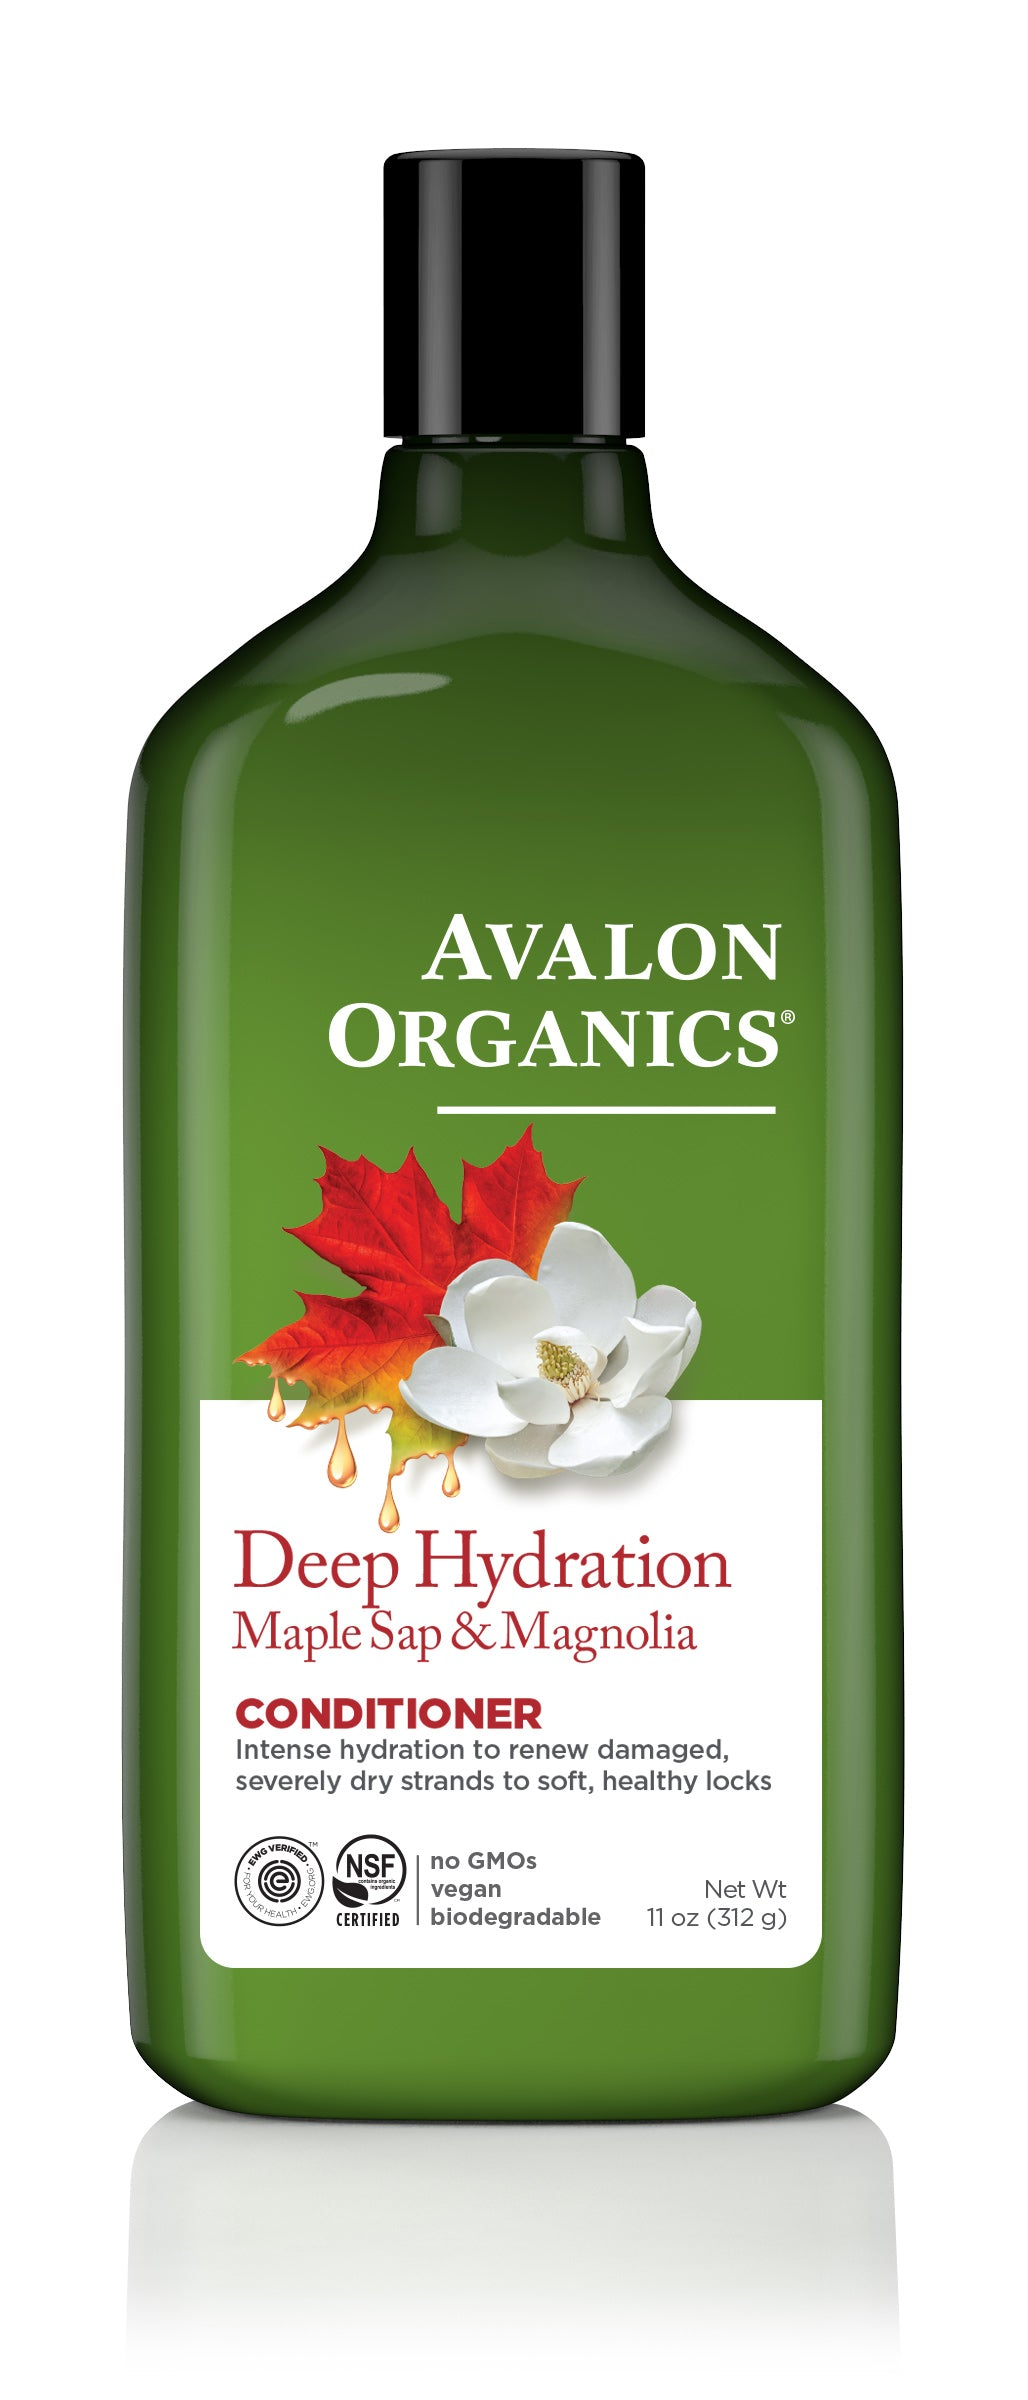 Deep Hydration Maple Sap & Magnolia